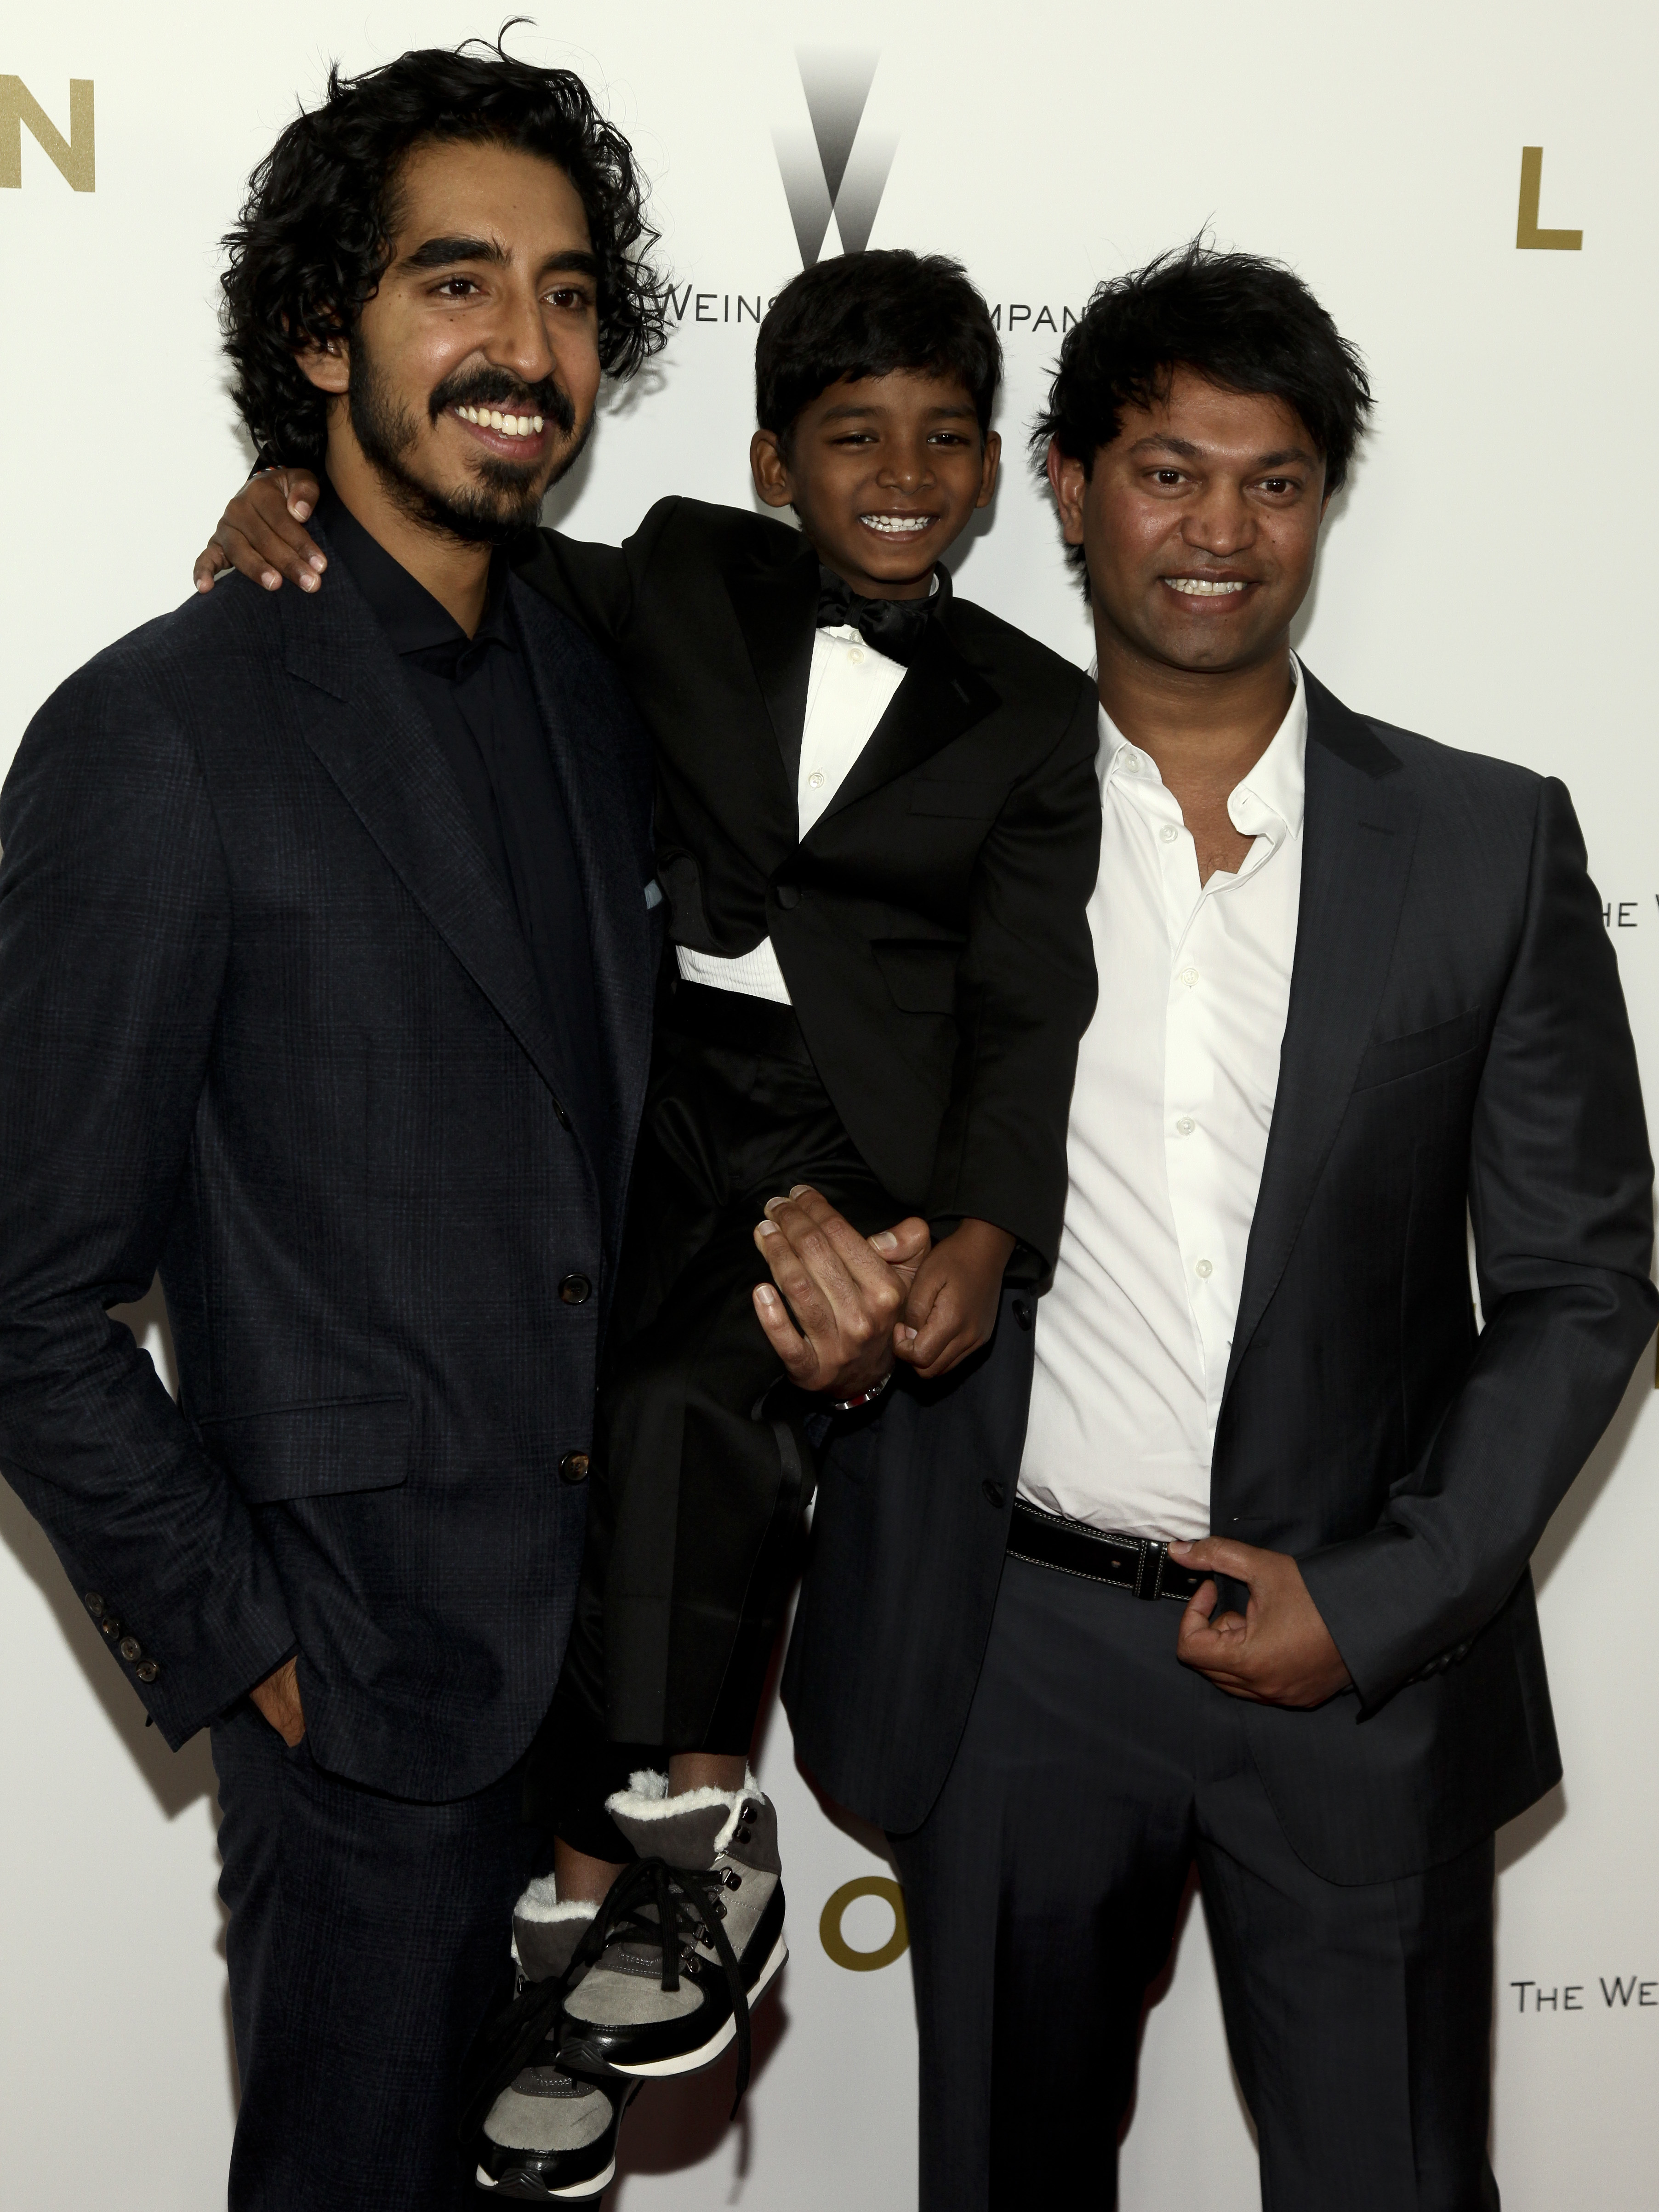 """Dev Patel, from left, Sunny Pawar and Saroo Brierley attend the premiere of """"Lion"""" at the Museum of Modern Art on Wednesday, Nov. 16, 2016, in New York. Brierley will appear at this year's RootsTech, scheduled for Feb. 27-March 2 at the Salt Palace Convention Center."""